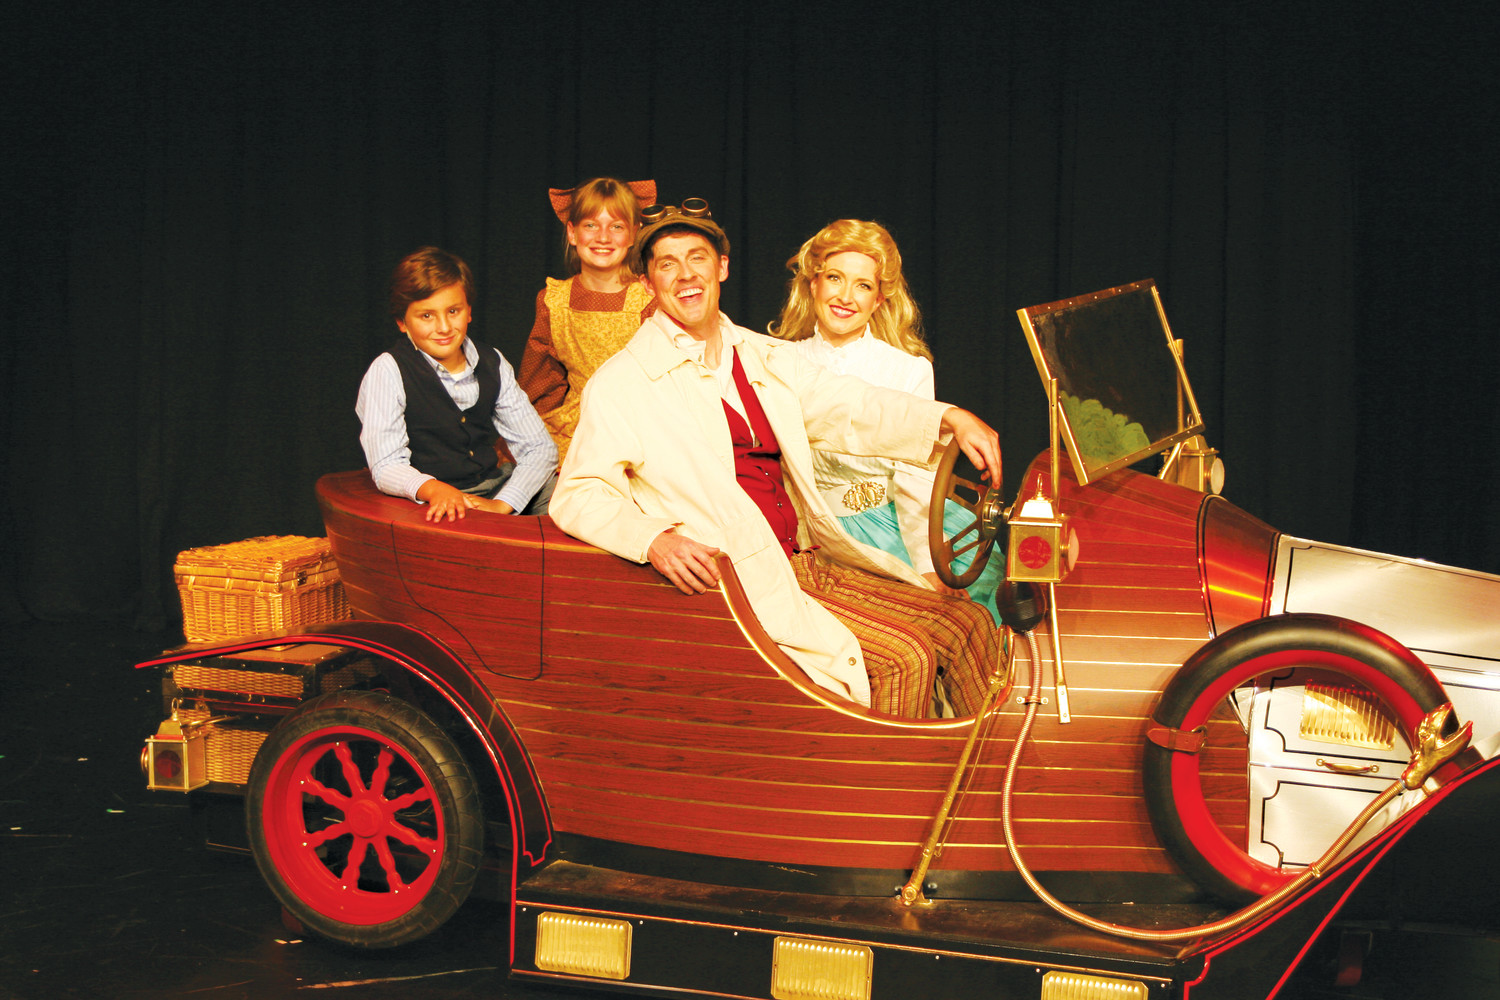 """Chitty Chitty Bang Bang"" is running at the Alhambra Theatre & Dining through July 29."